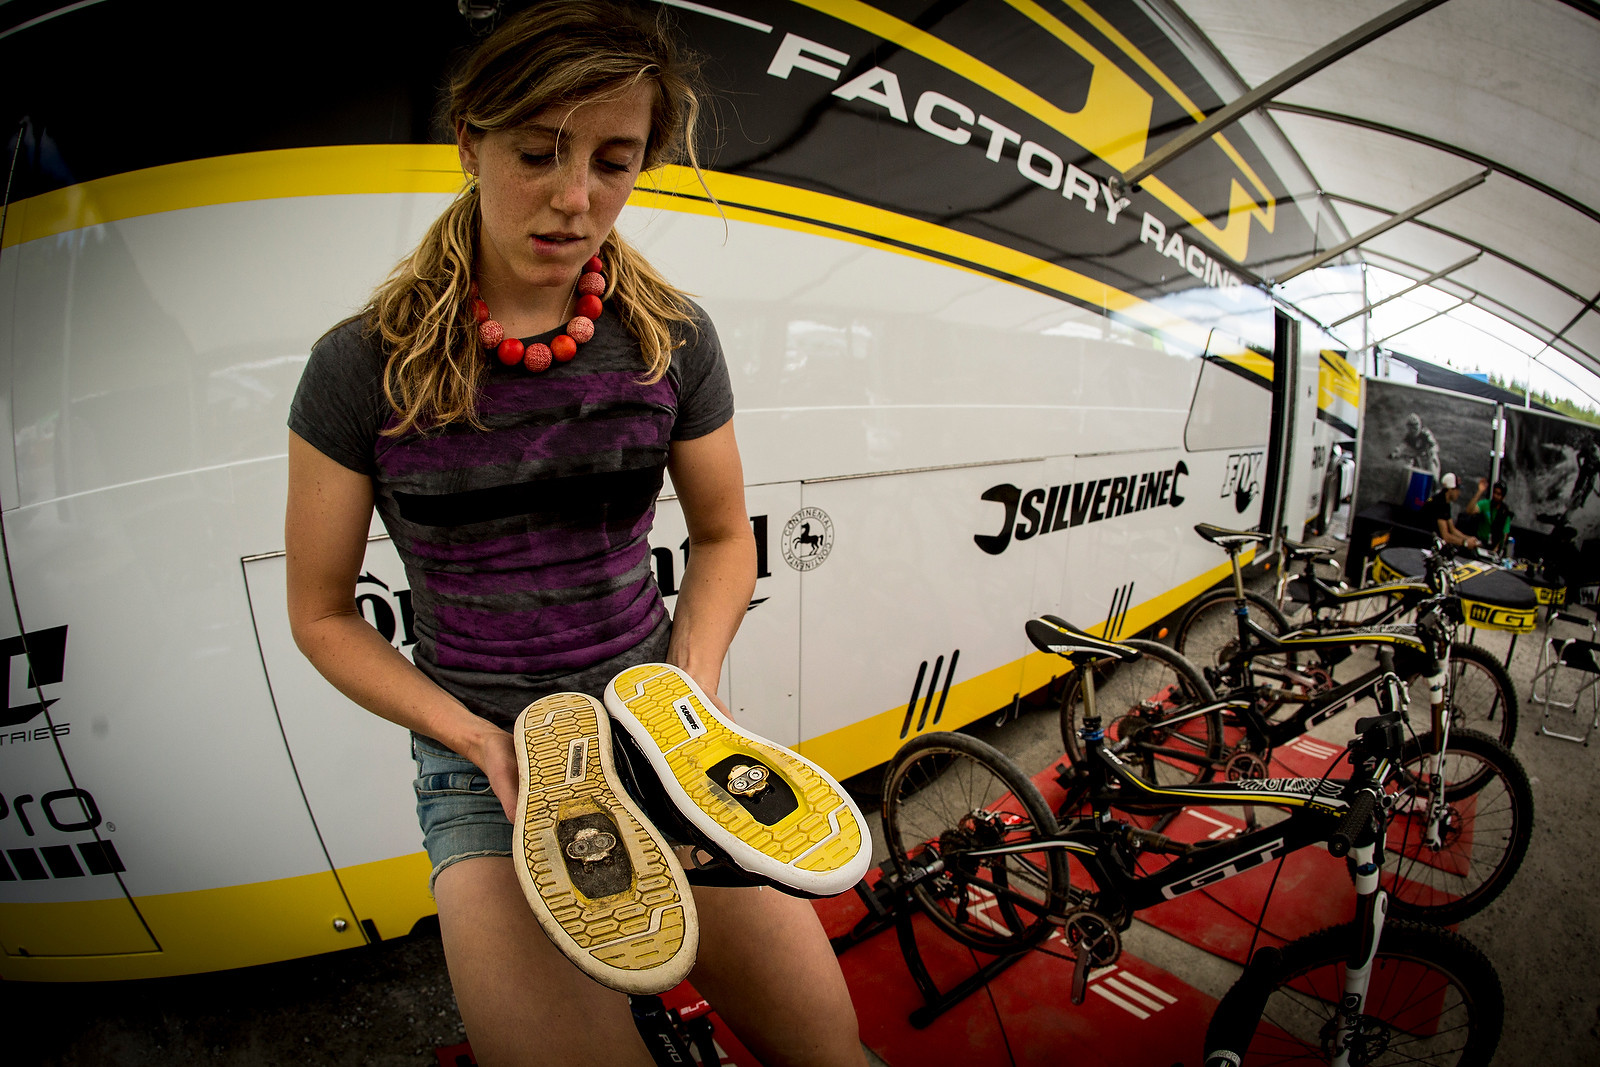 Rachel Atherton and Her Shoe Choice Dilema at Fort Wiliam - 2013 Fort William World Cup Pit Bits - Mountain Biking Pictures - Vital MTB